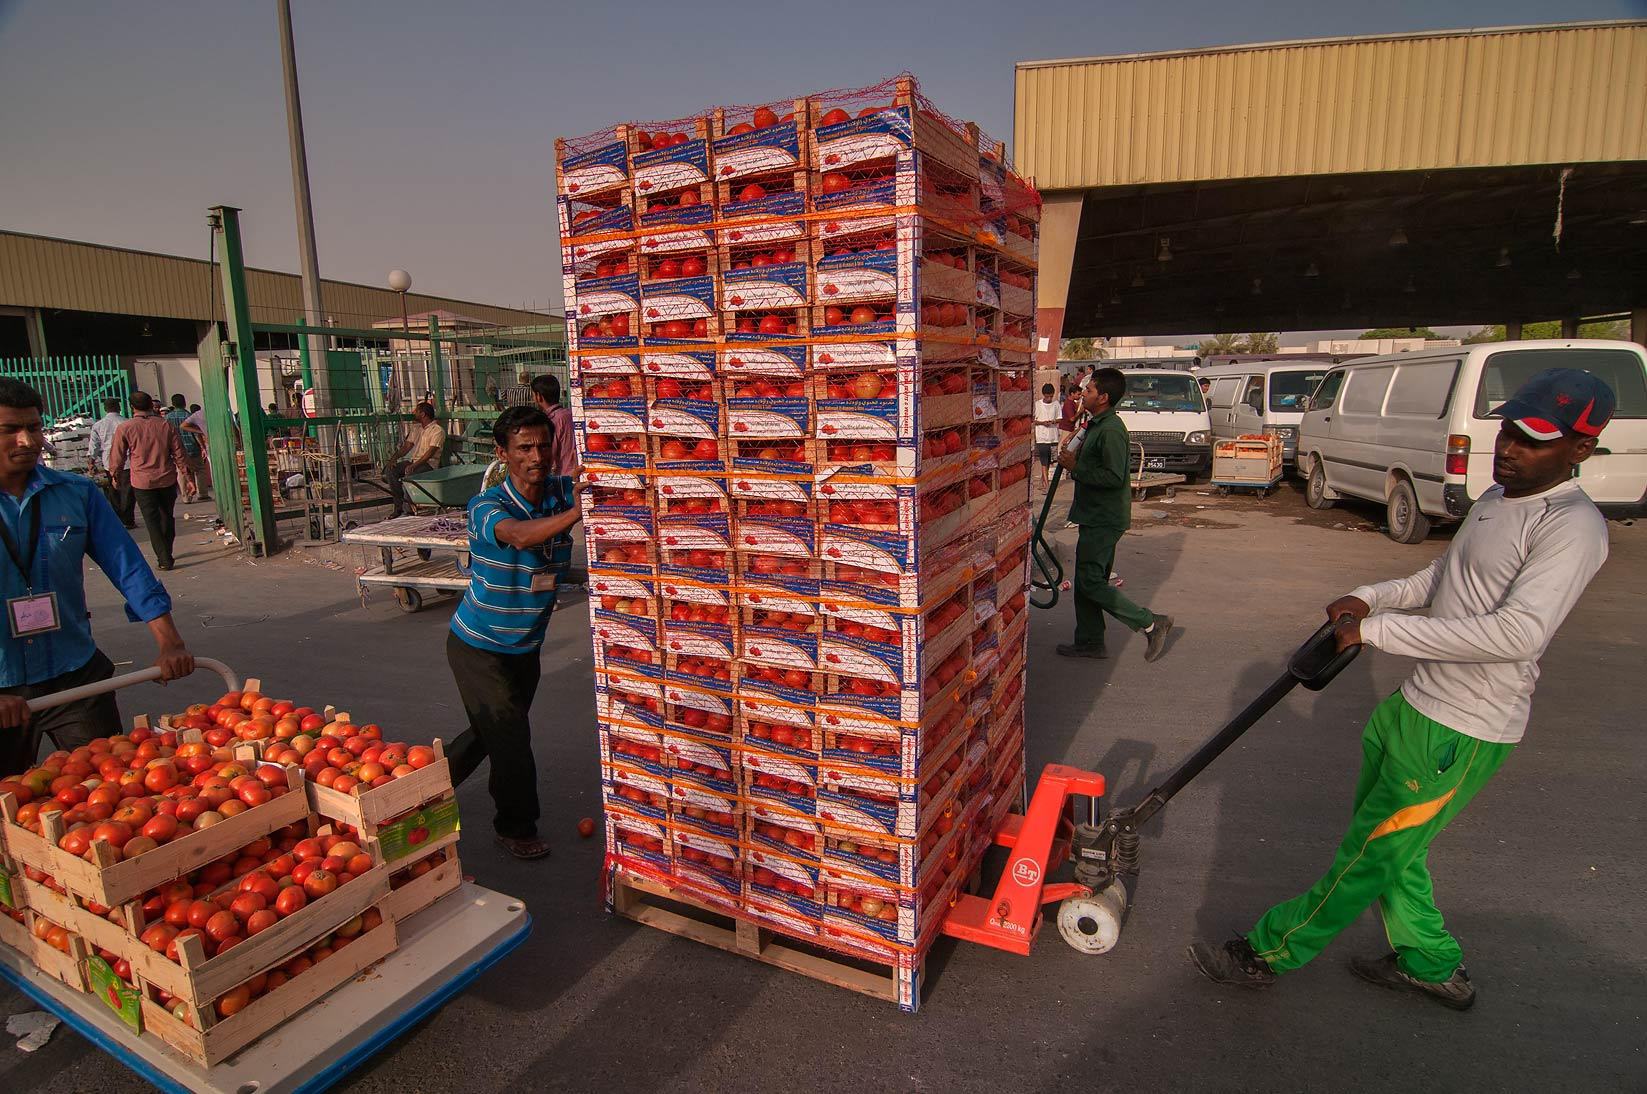 Carrying boxes with tomato from Wholesale Vegetable Market in Abu Hamour. Doha, Qatar